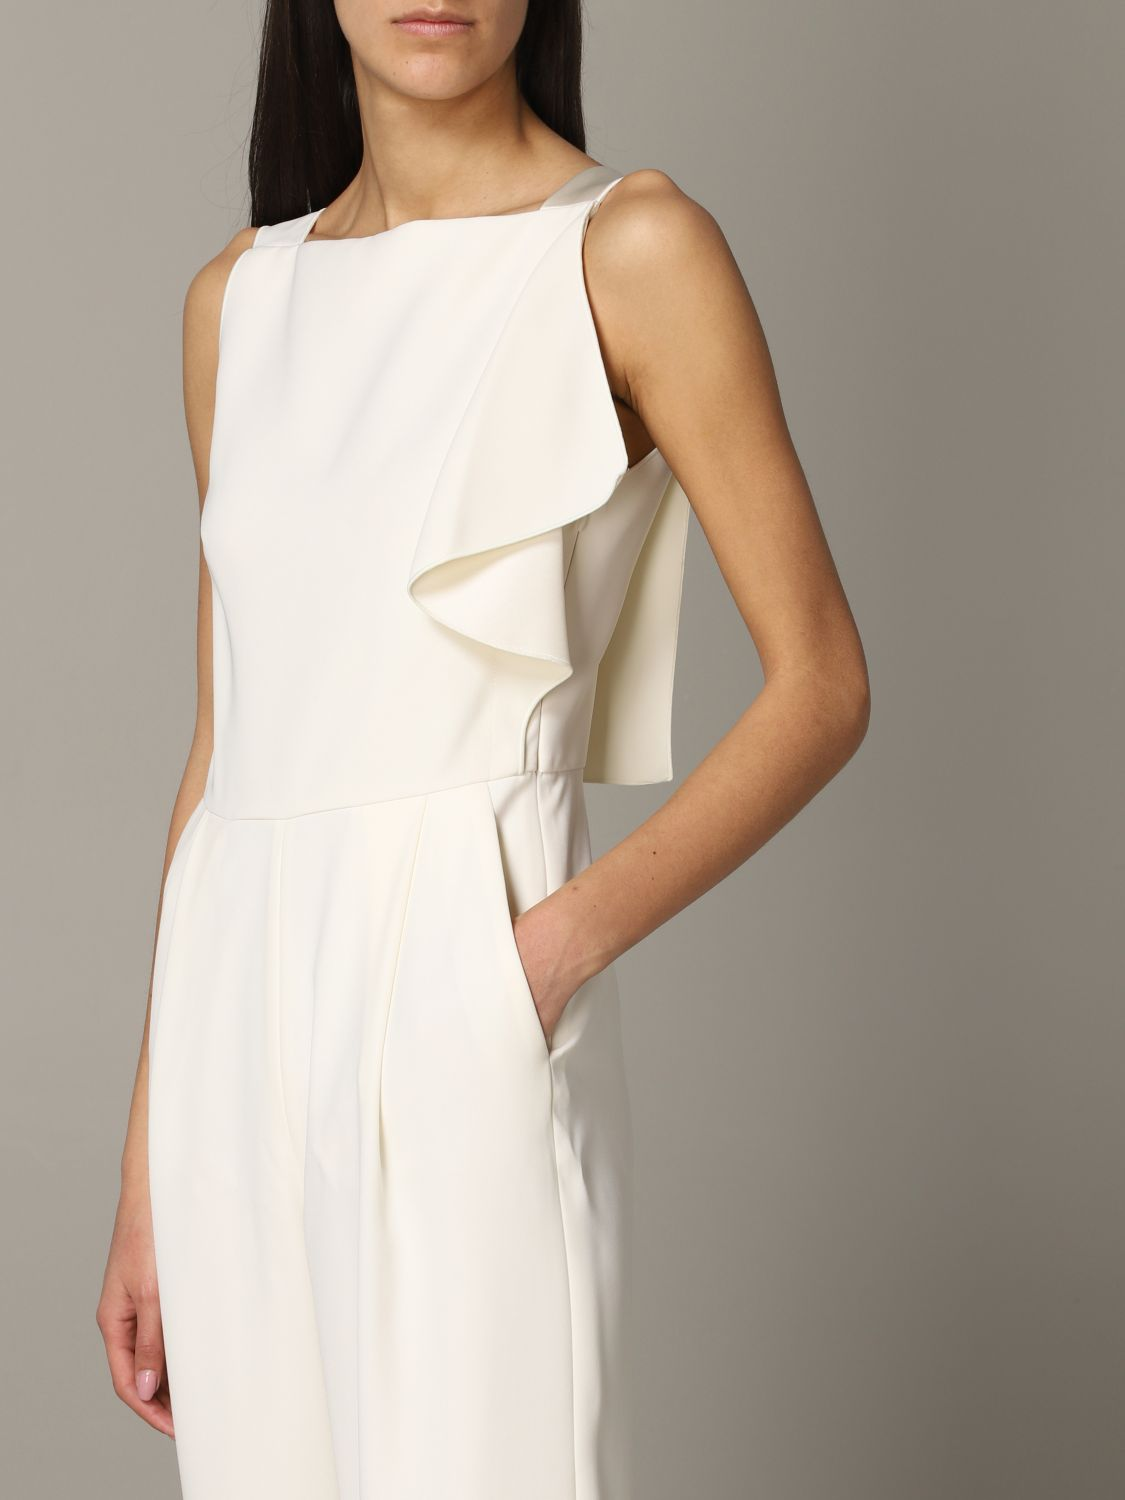 Emporio Armani suit in cady and satin white 4